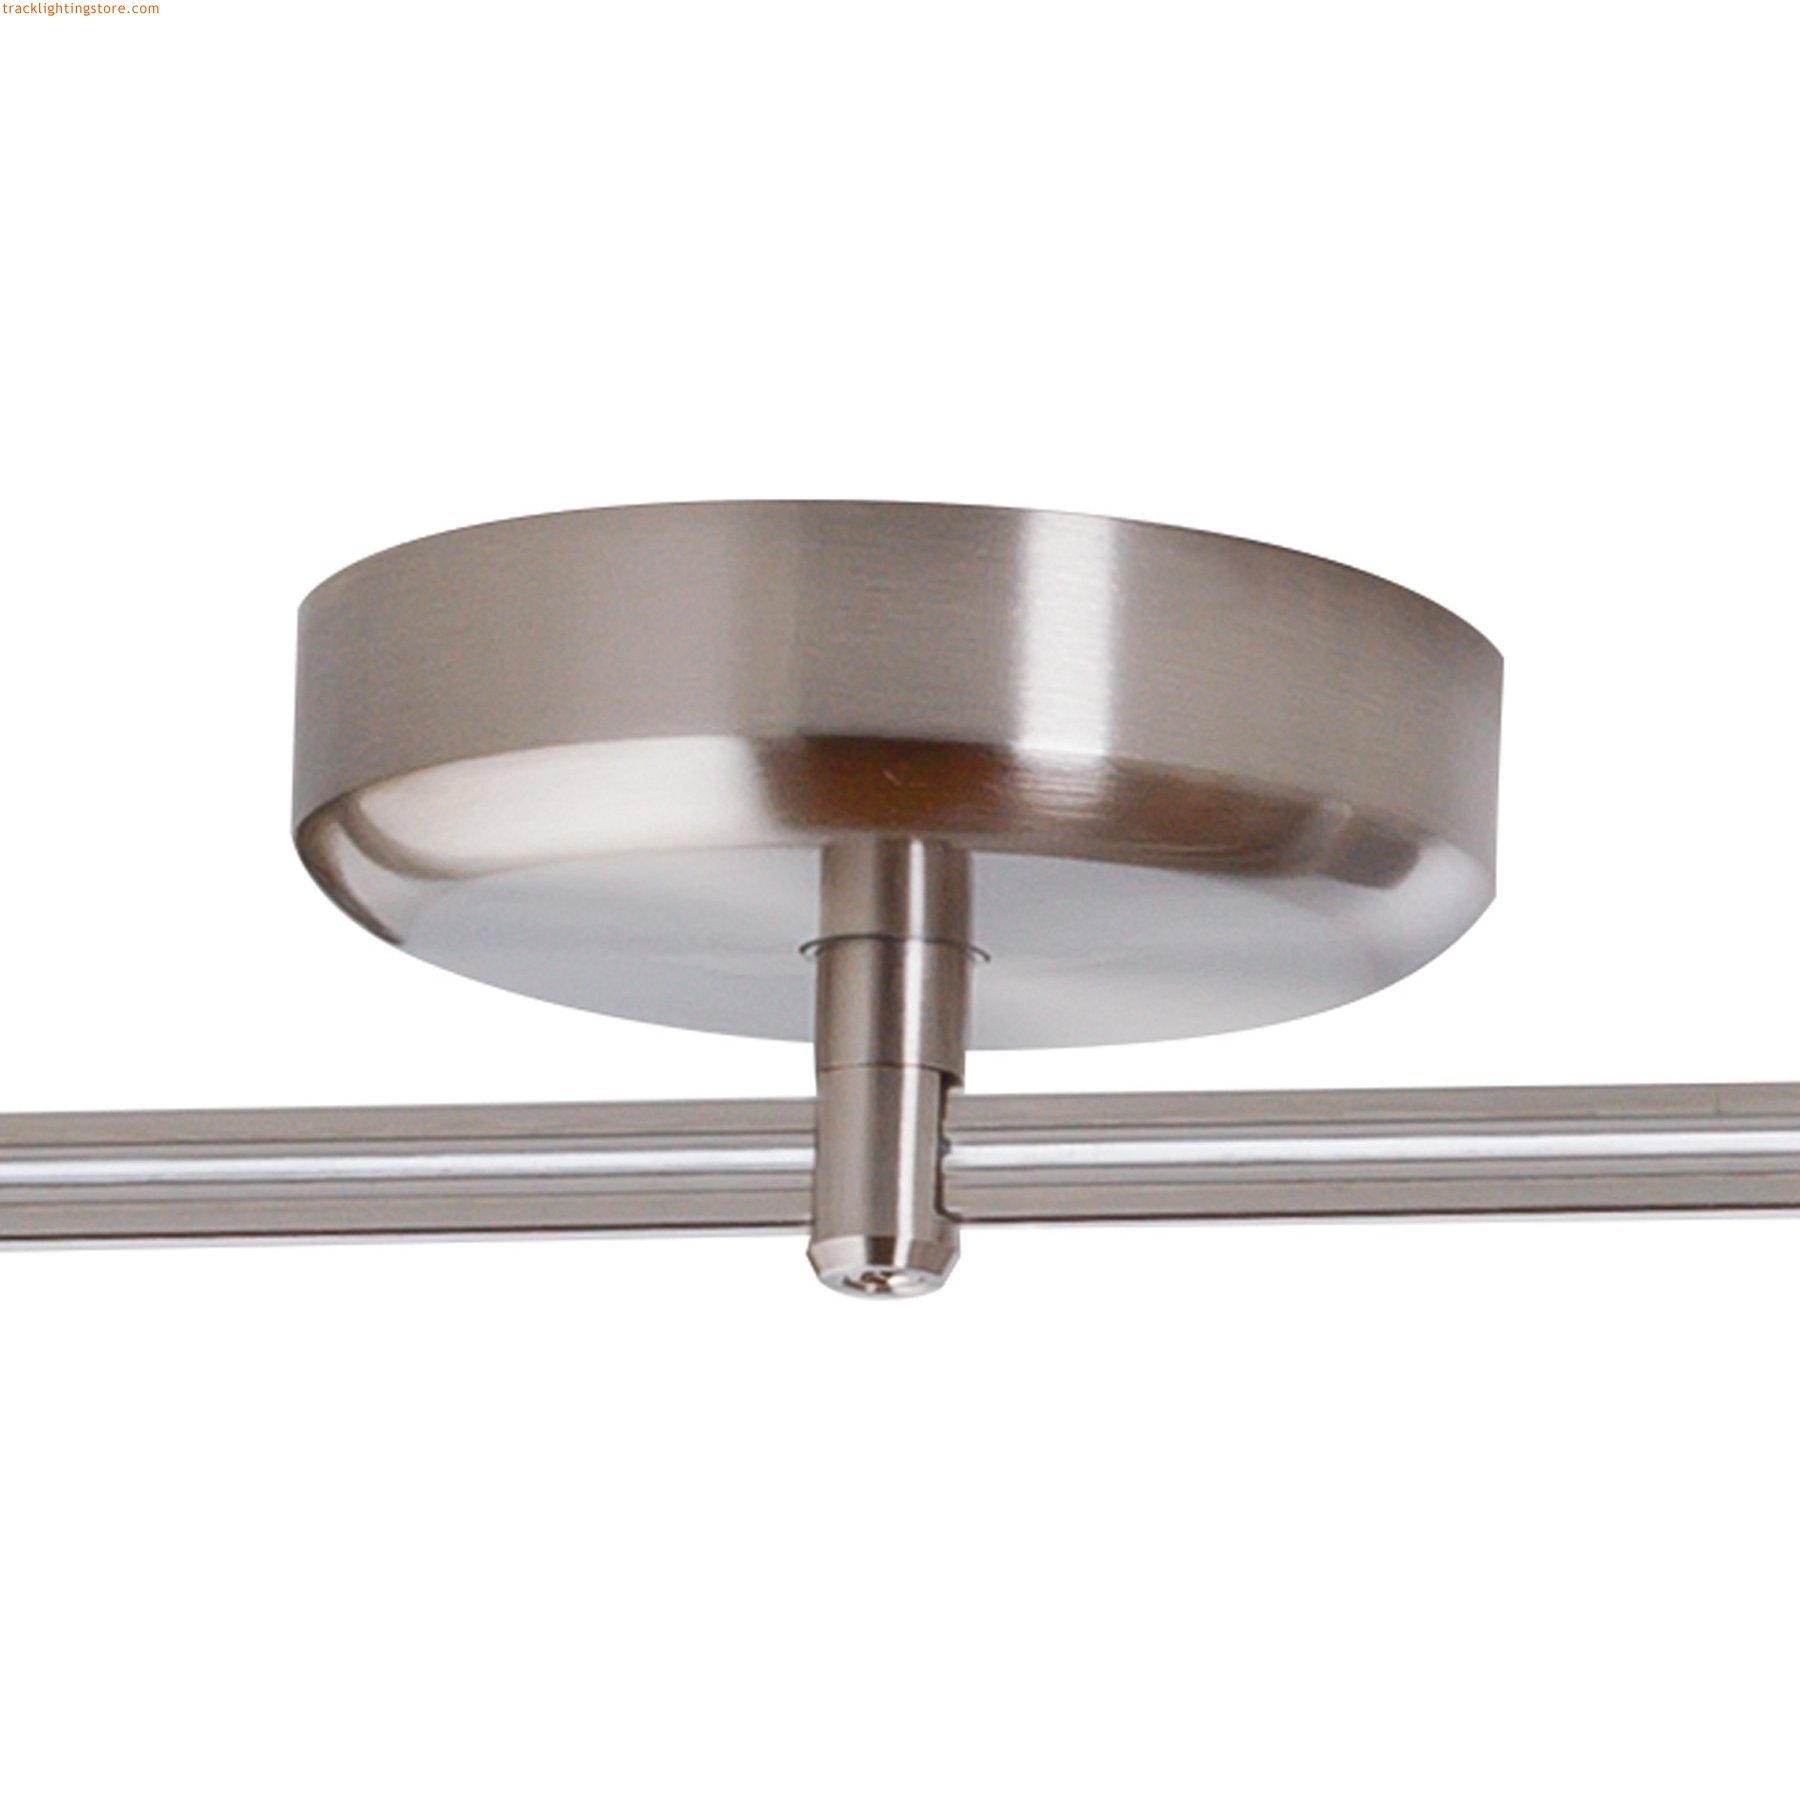 Transformer - Accessories Track Lighting: Tools